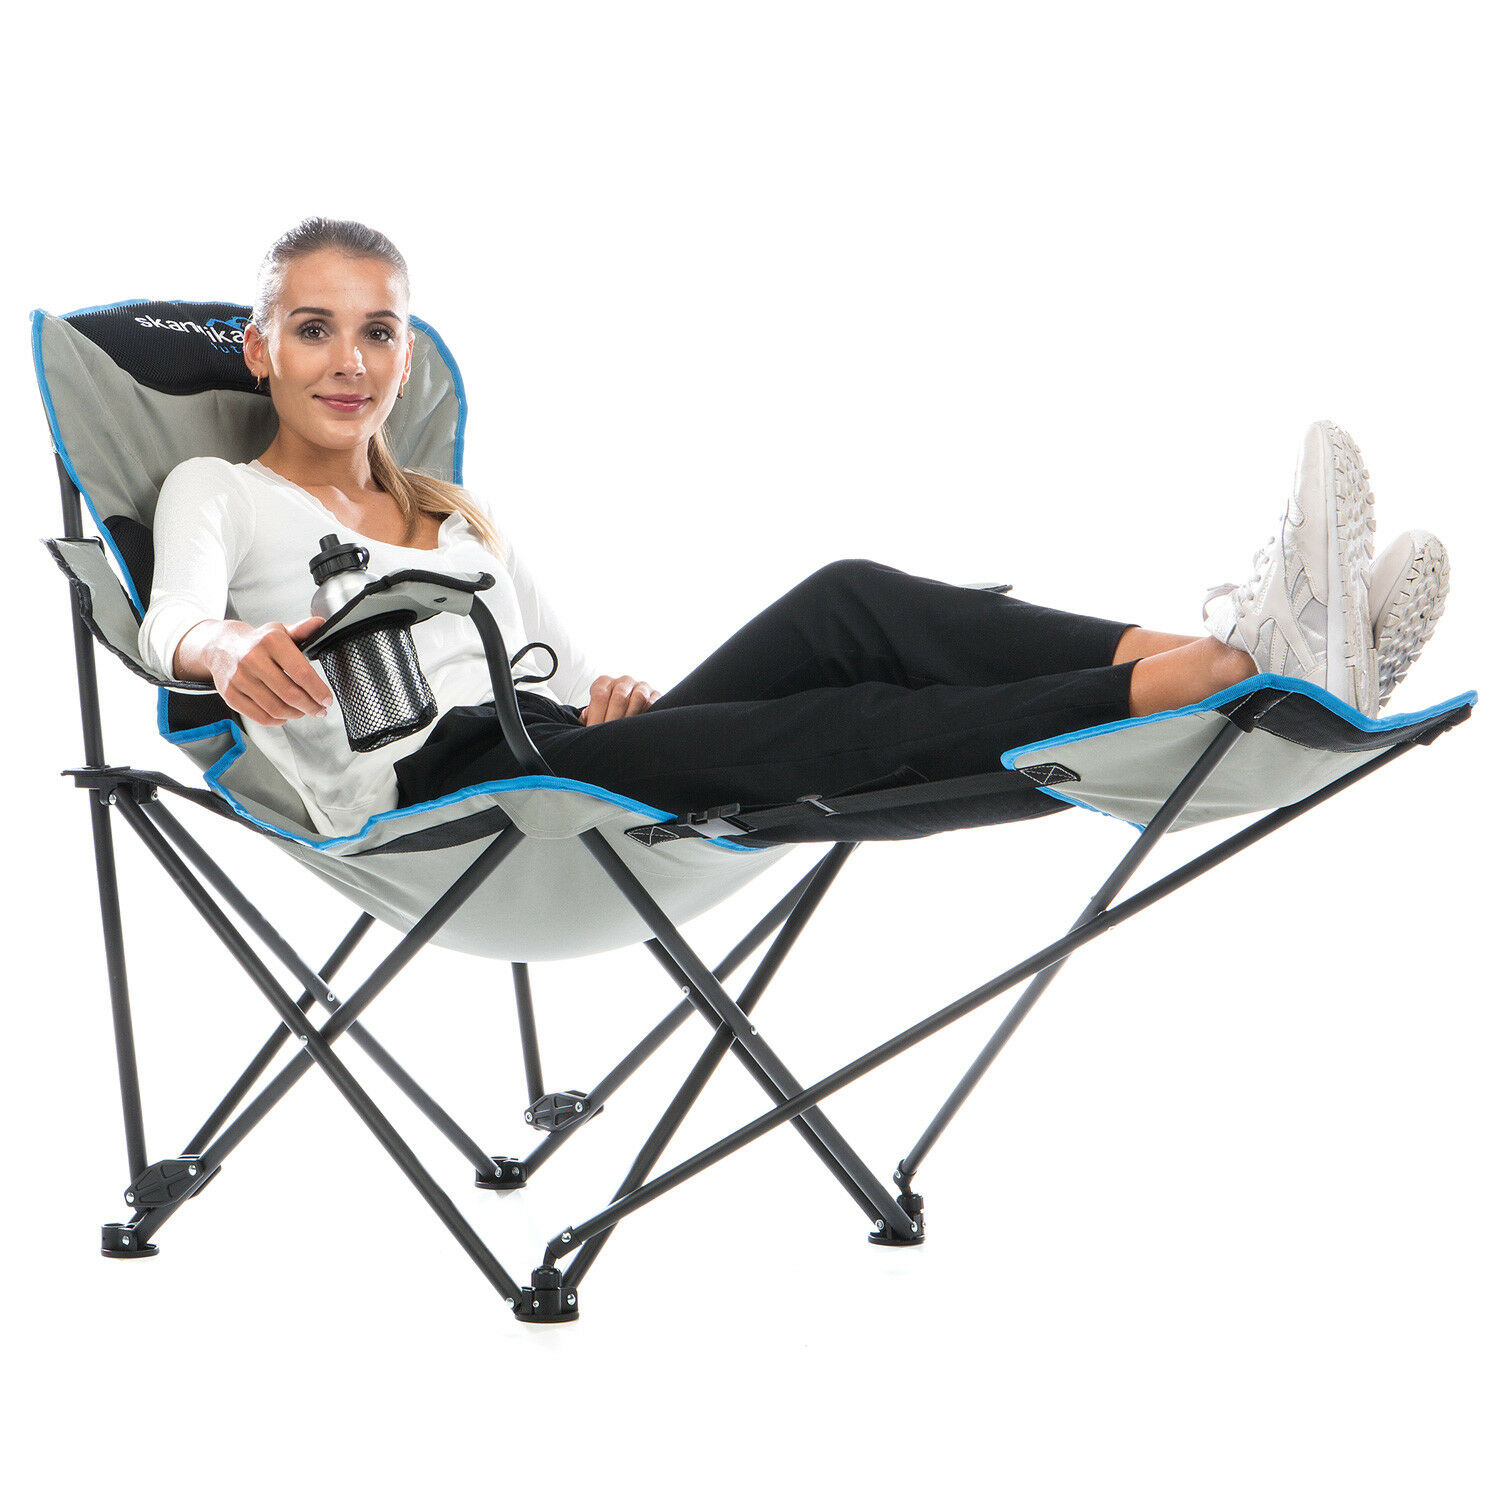 SKANDIKA Camping Fauteuil relax pliable Jambe Extension Boisson Support max. 130 kg NEUF